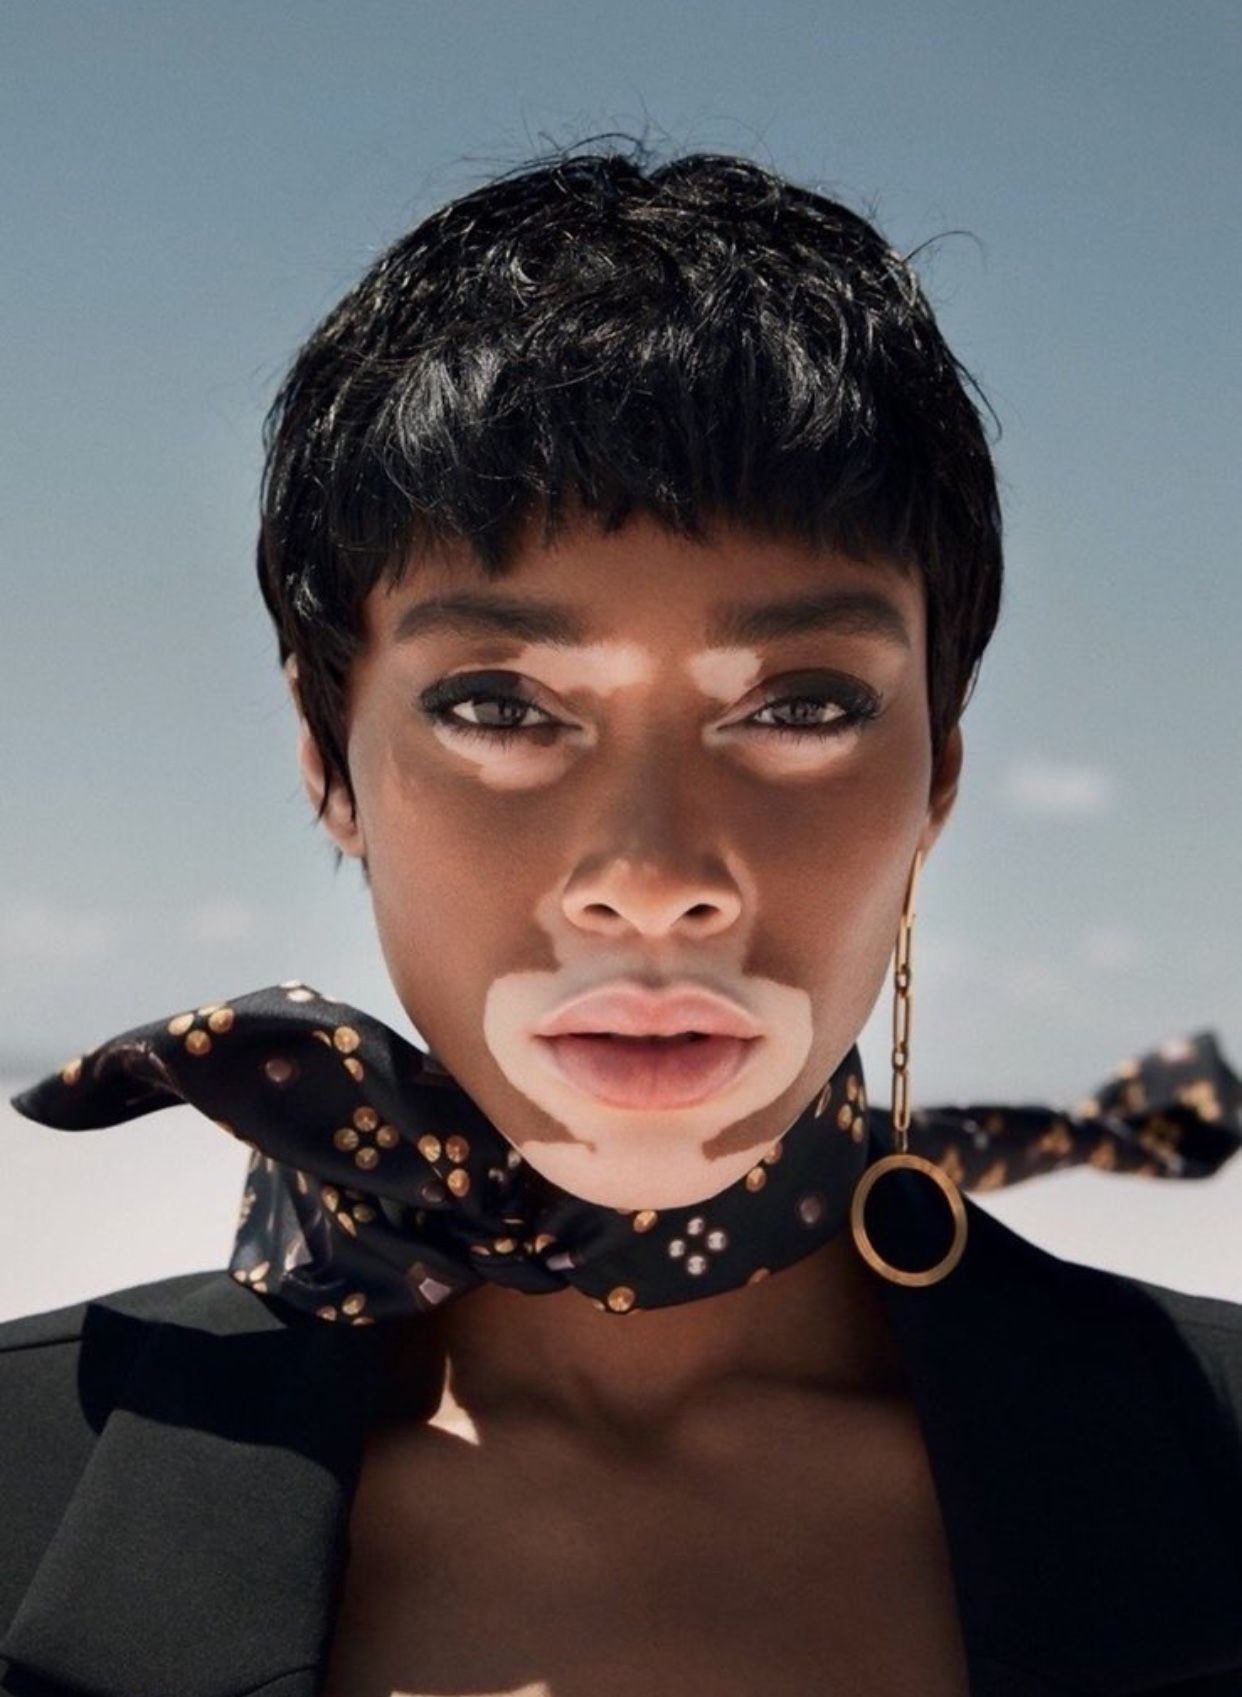 Pin by Ceola Johnson on Winnie Harlow Winnie harlow